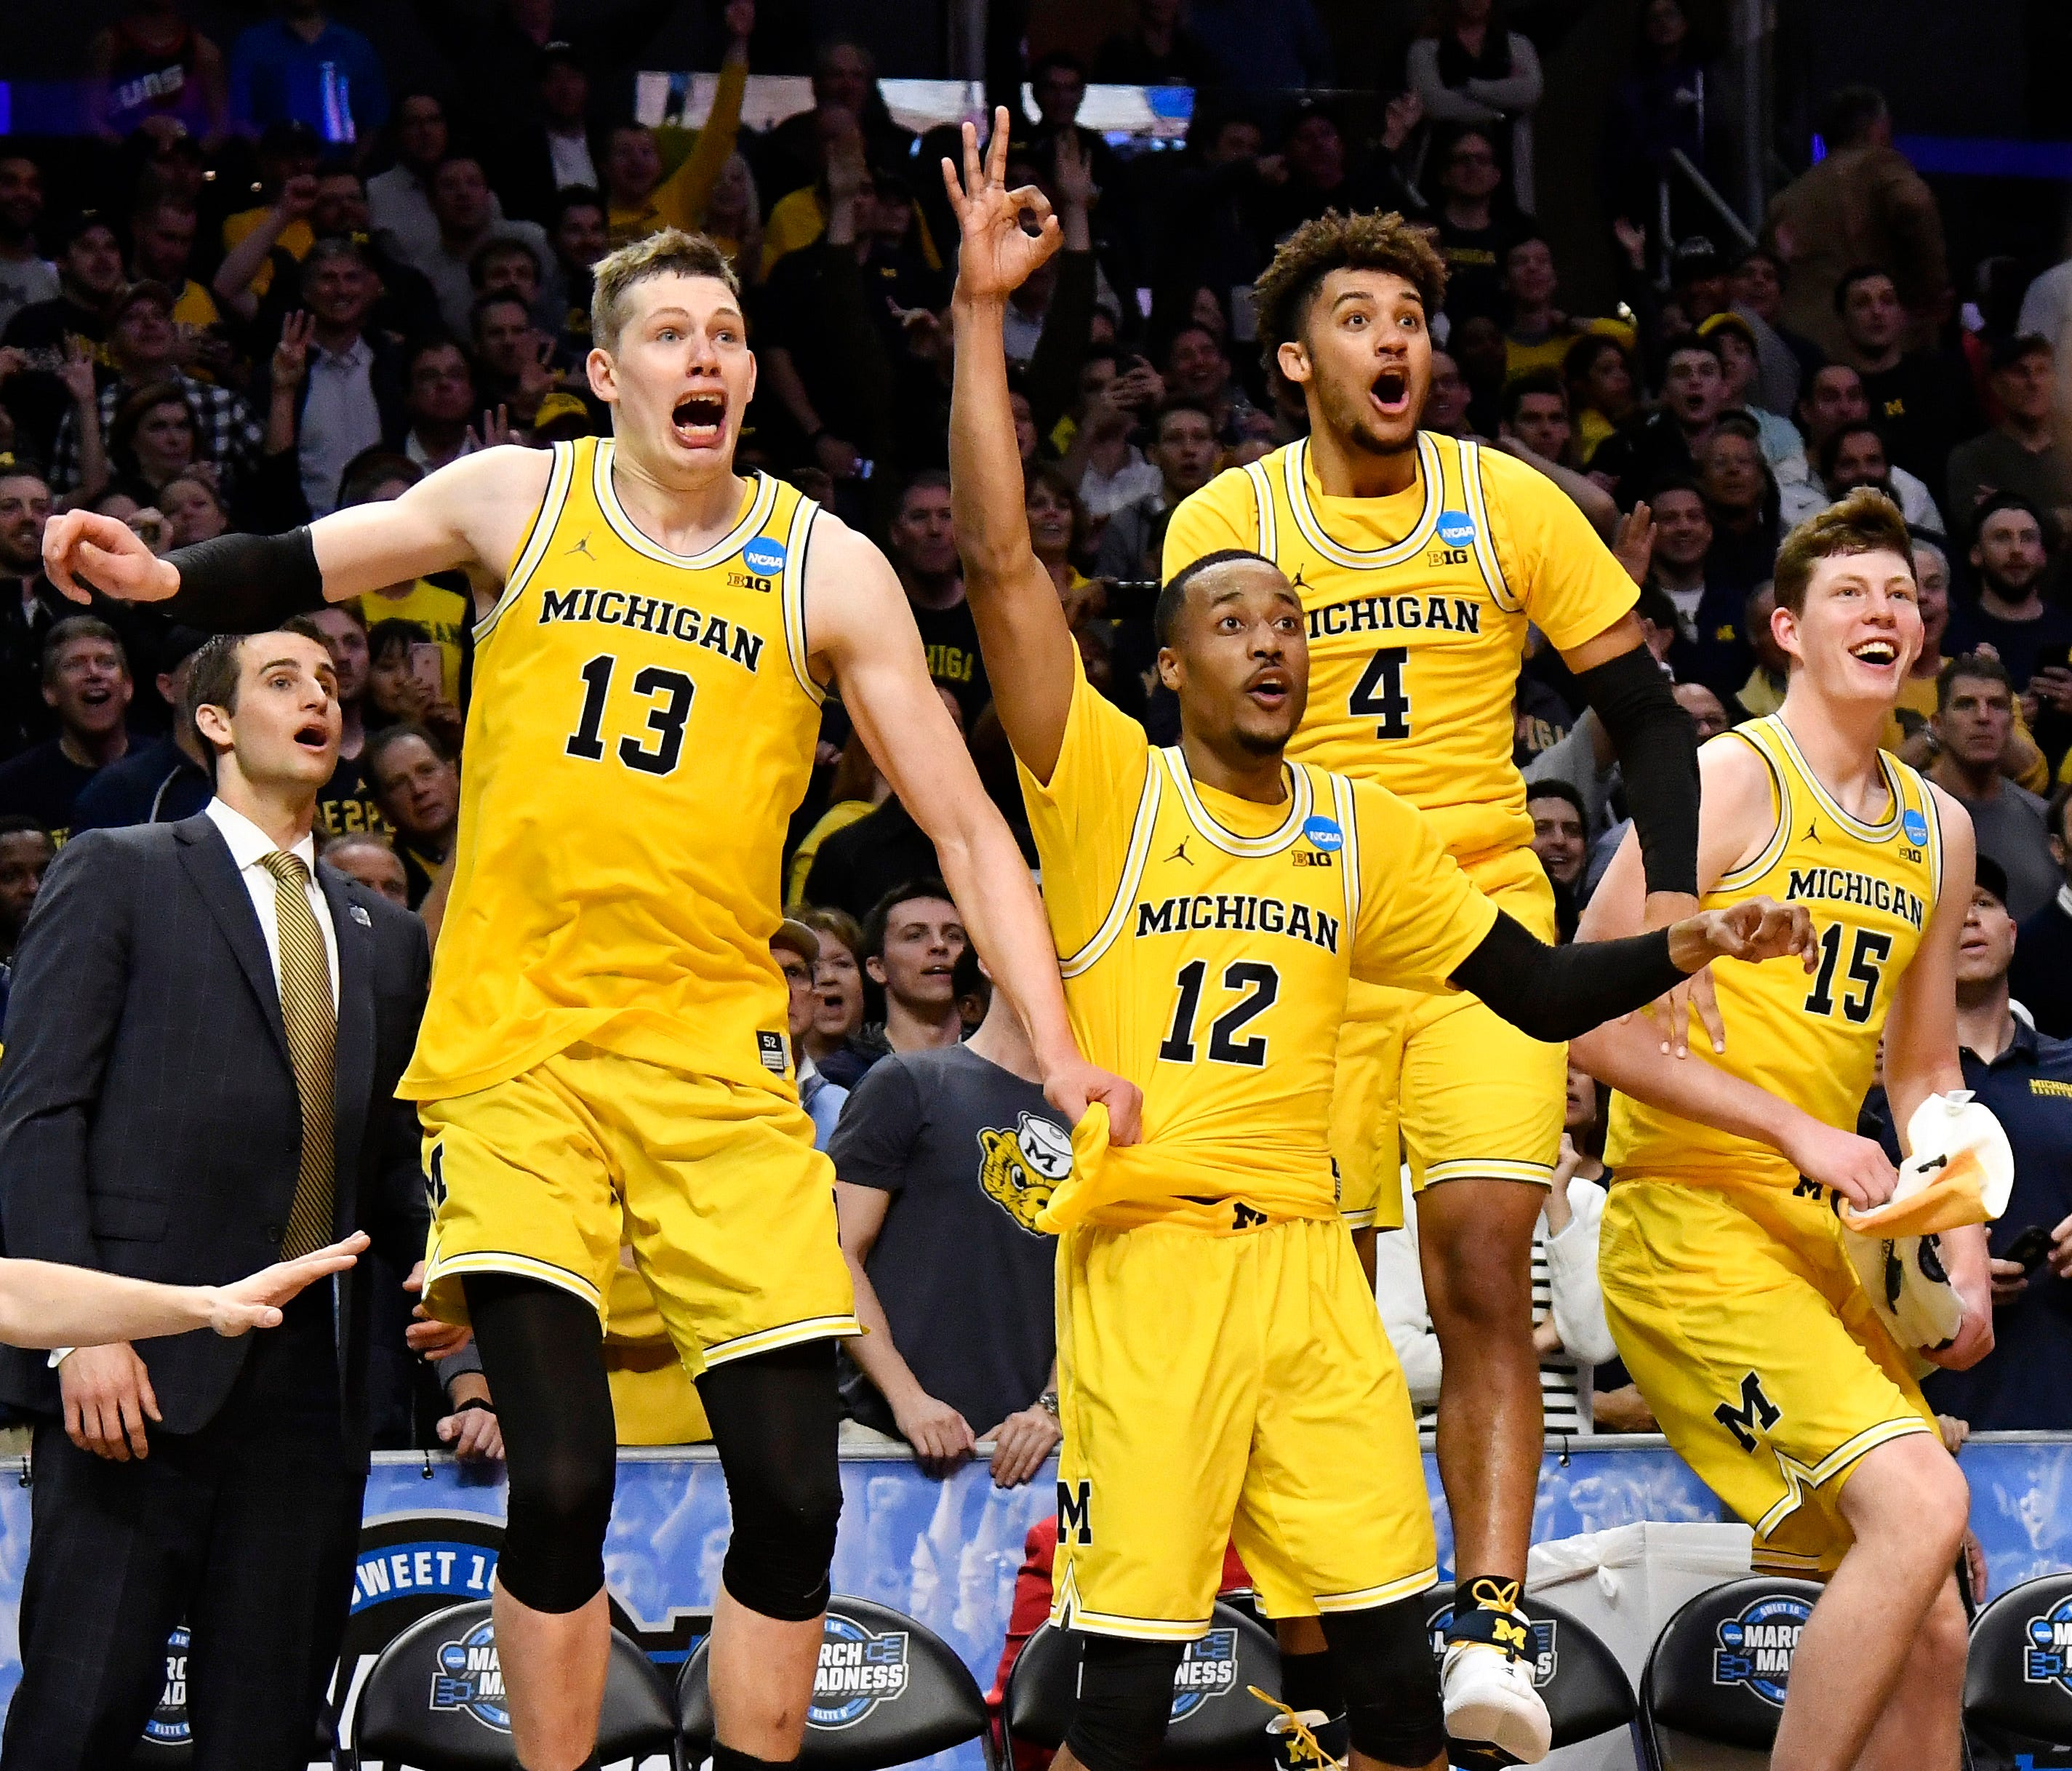 Michigan Wolverines forward Moritz Wagner (13) and guard Muhammad-Ali Abdur-Rahkman (12) and forward Isaiah Livers (4) and center Jon Teske (15) celebrate after defeating the Texas A&M Aggies in the semifinals of the West regional of the 2018 NCAA To